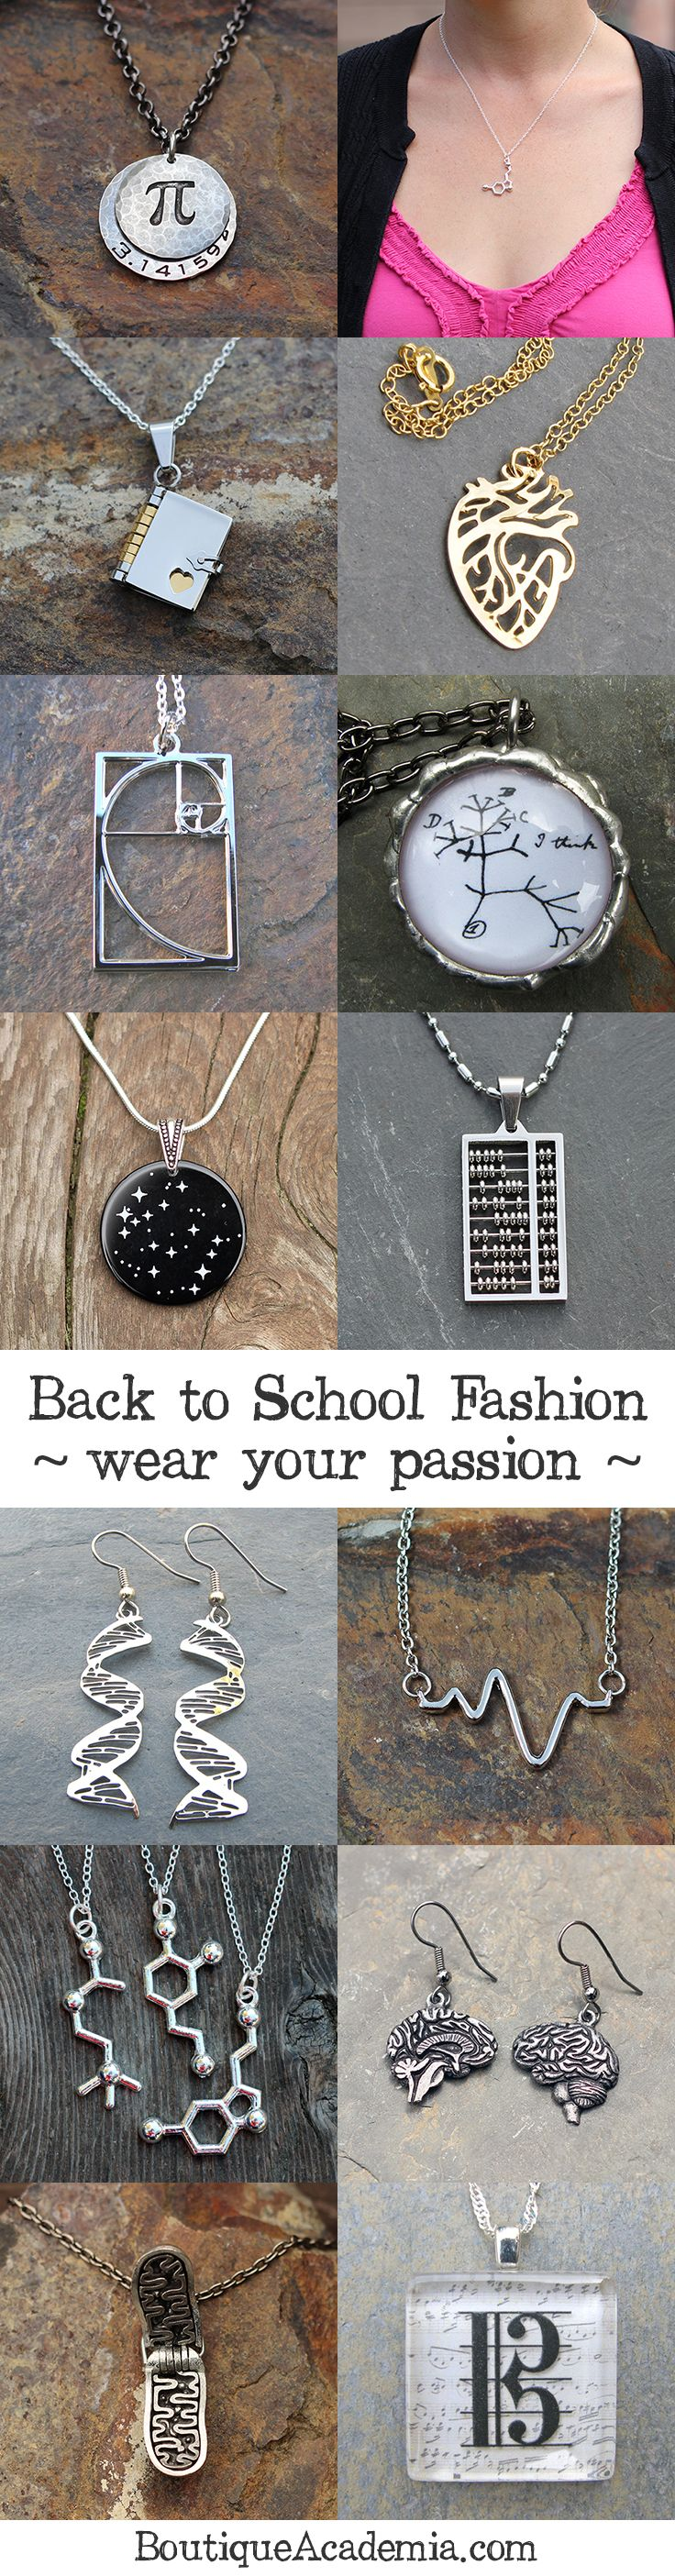 The best kind of Back-to-School Fashion!